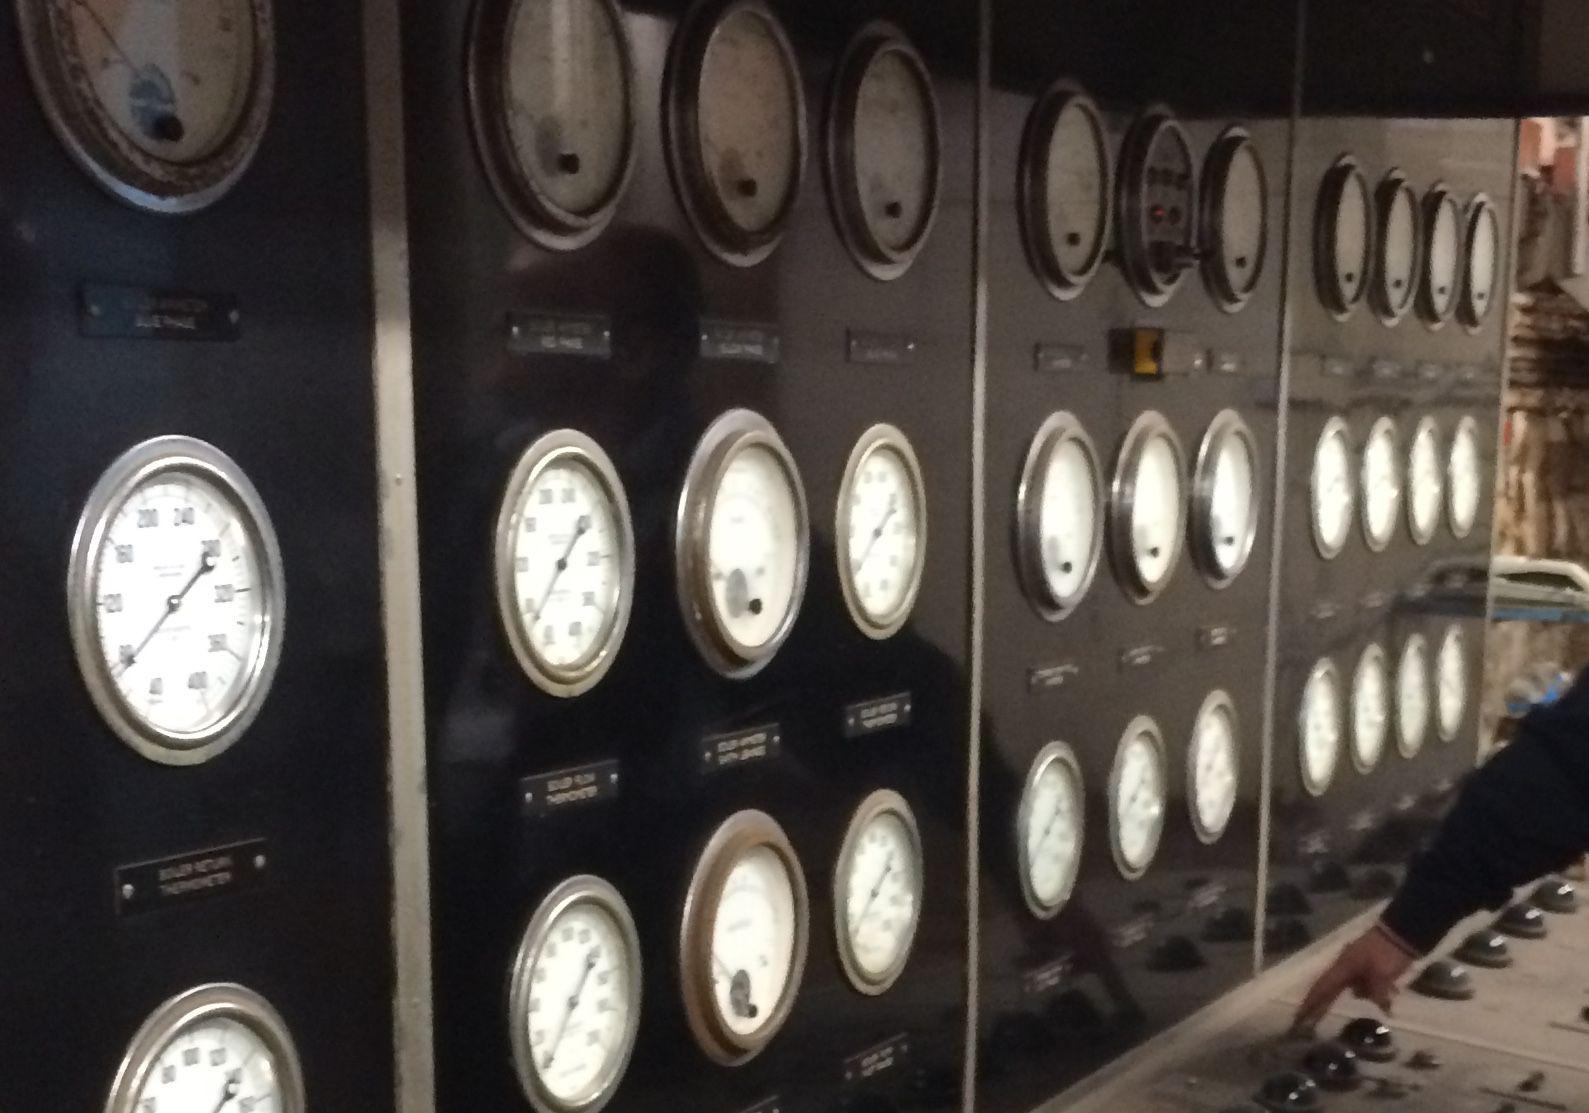 some dials from a secret location under London